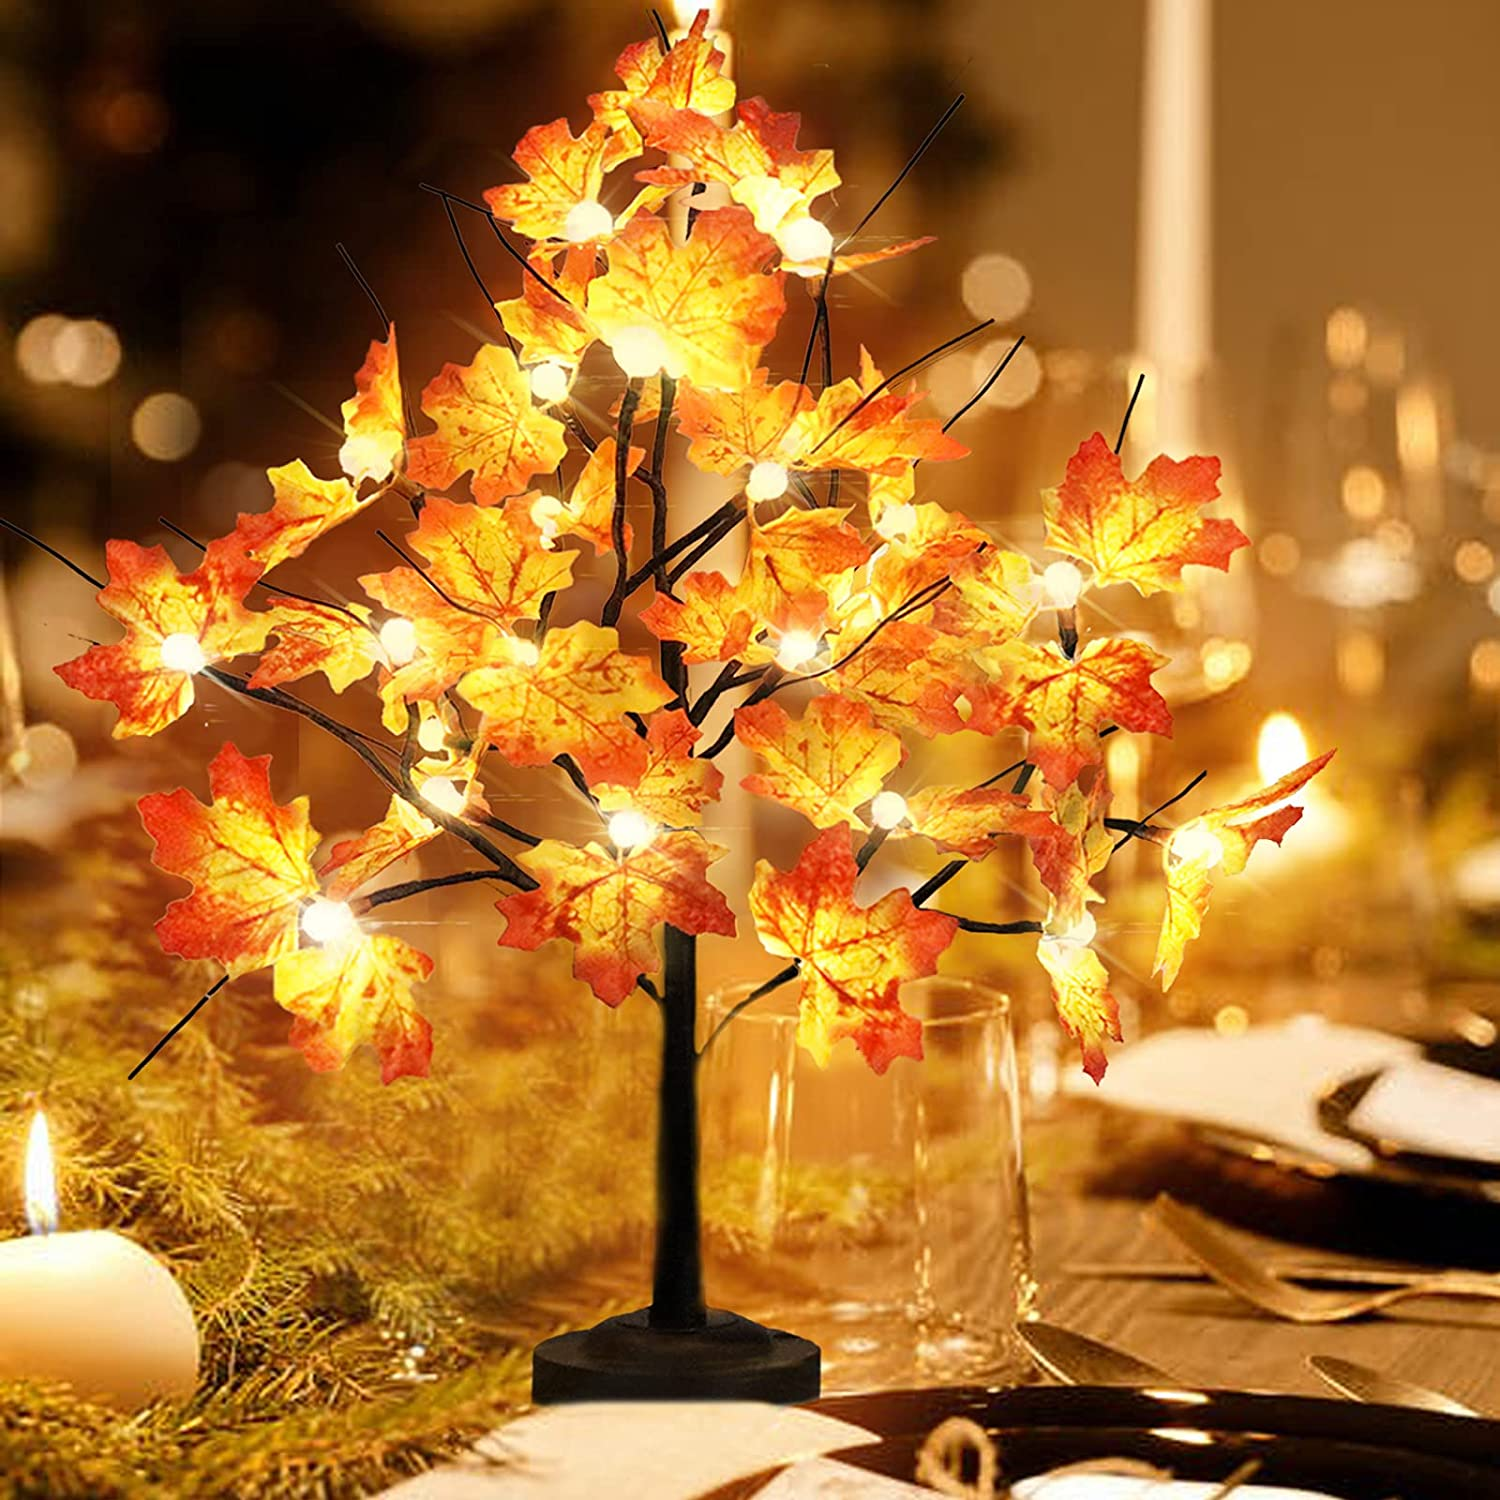 Maple Tree Light for Fall Thanksgiving Decor,24 LED Lighted Maple Tree with Leaves,2Ft Maple Light up Tree 8 Lighting Mode USB & Battery Operated Home Decoration Holiday Halloween Party Gift Ideas